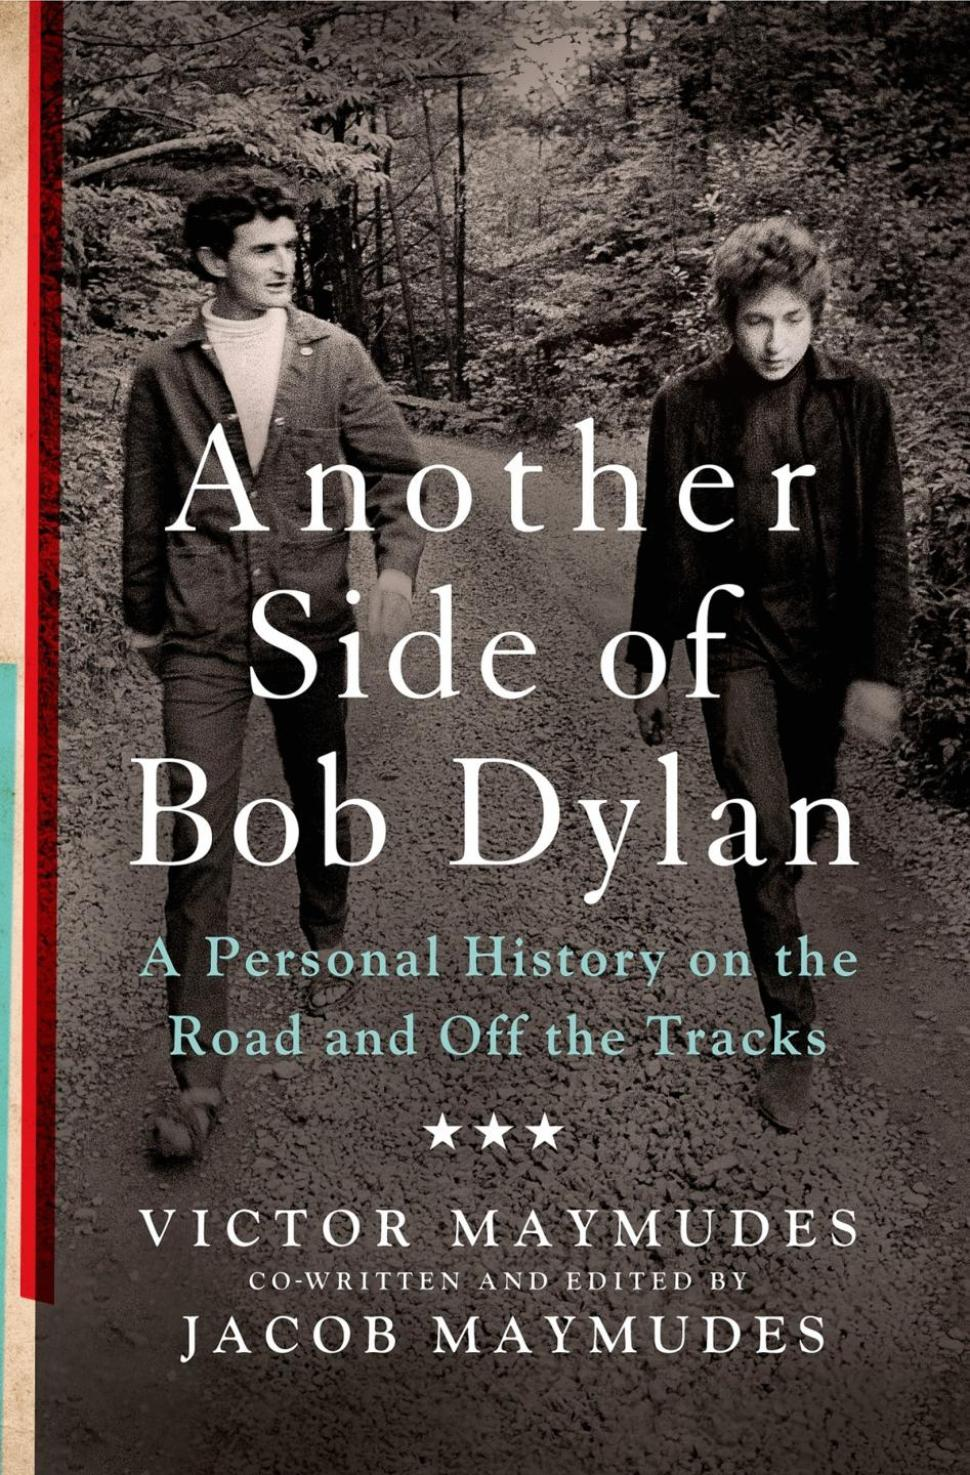 An account based on Victor Maymudes' memories of his years as an associate of Dylan